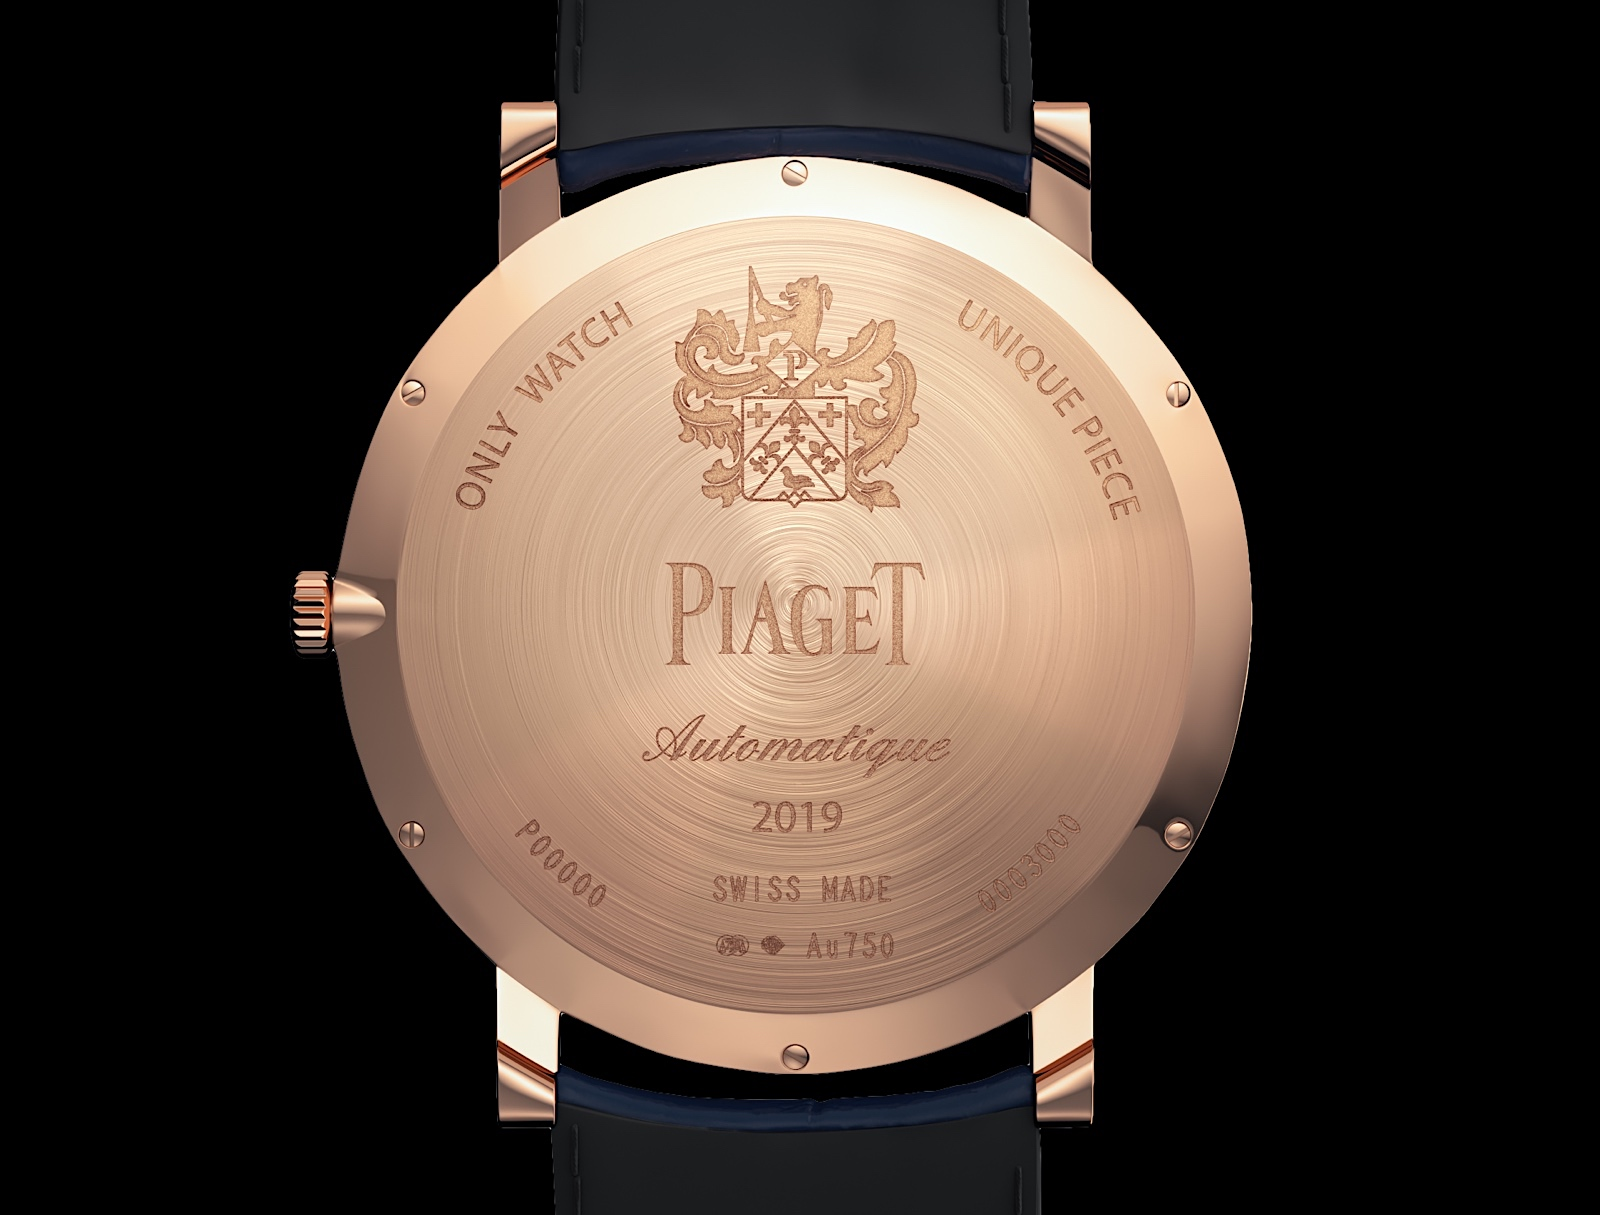 Piaget Altiplano Ultimate Automatic Only Watch 2019 - back